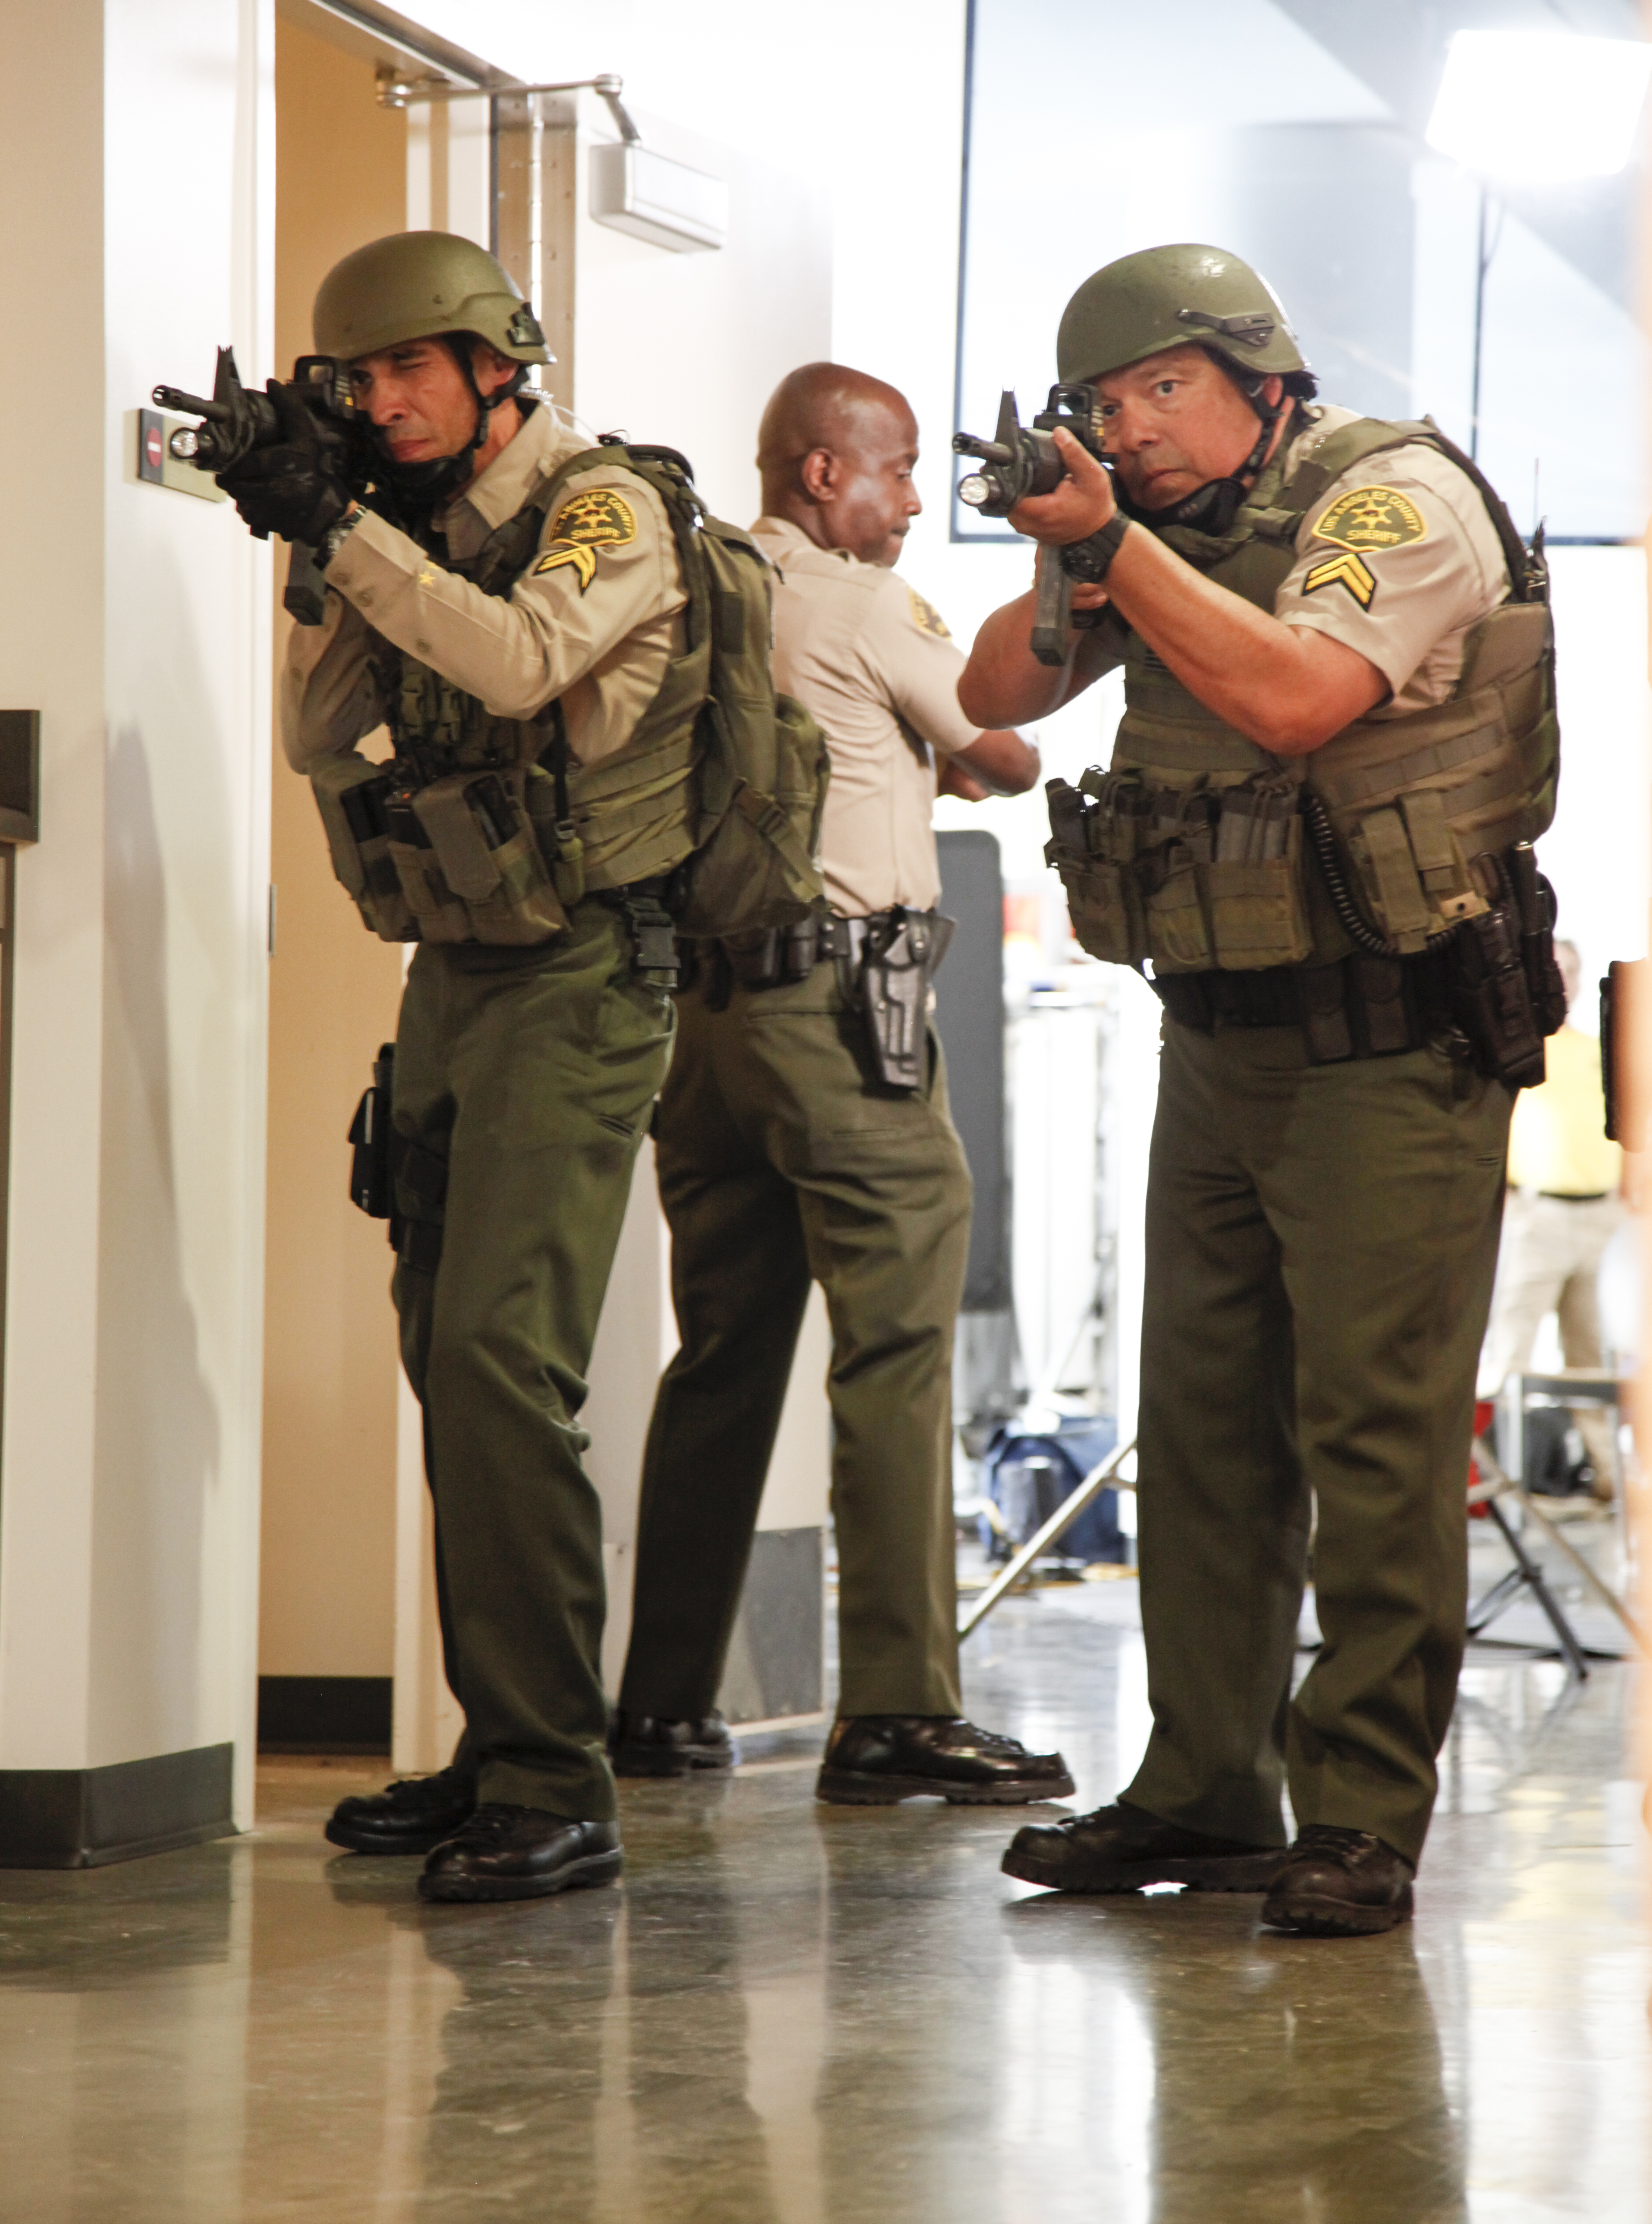 Video in production to help students prepare for shooter situation